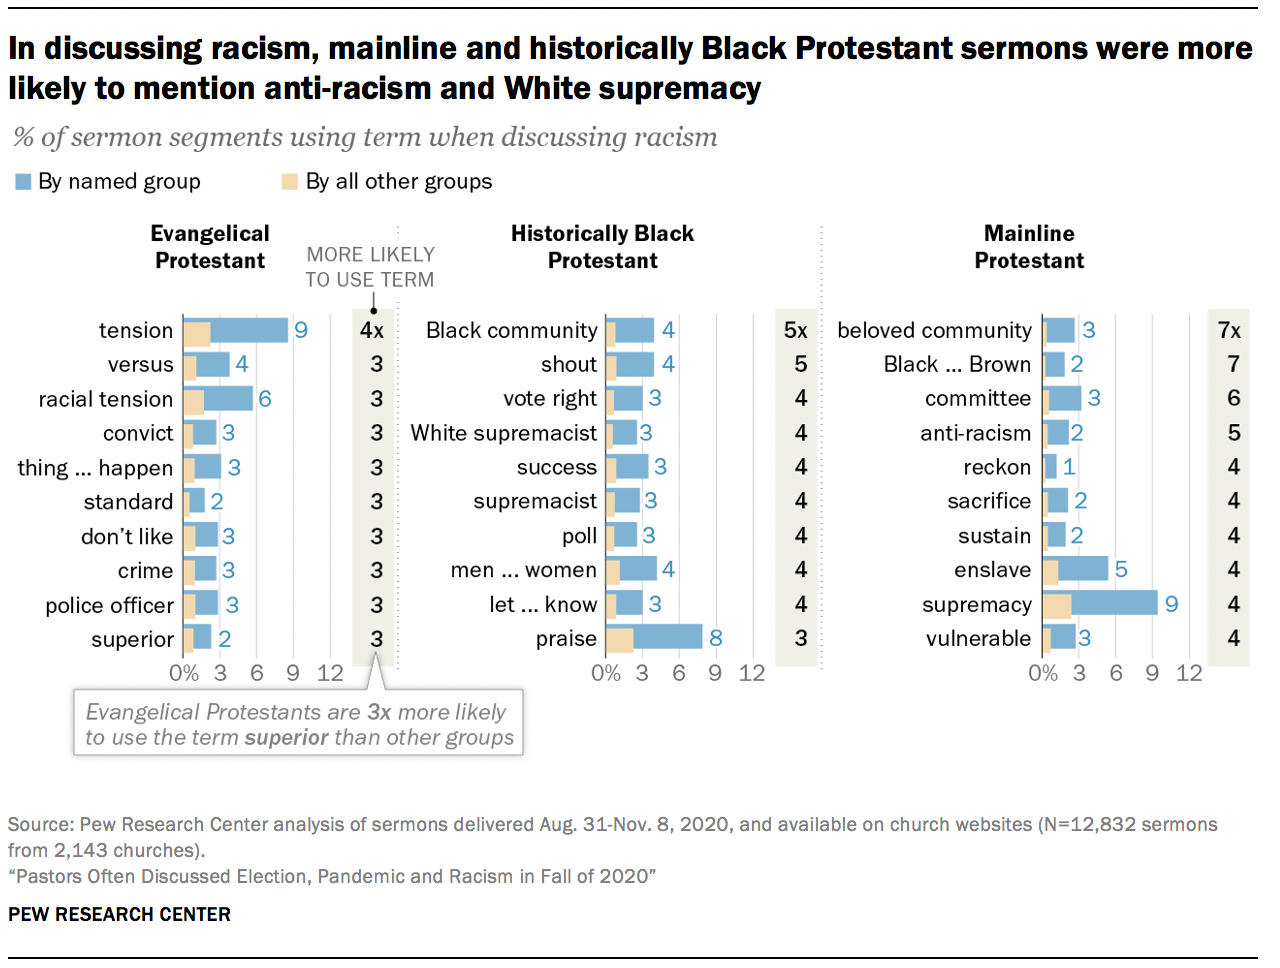 In discussing racism, mainline and historically Black Protestant sermons were more likely to mention anti-racism and White supremacy